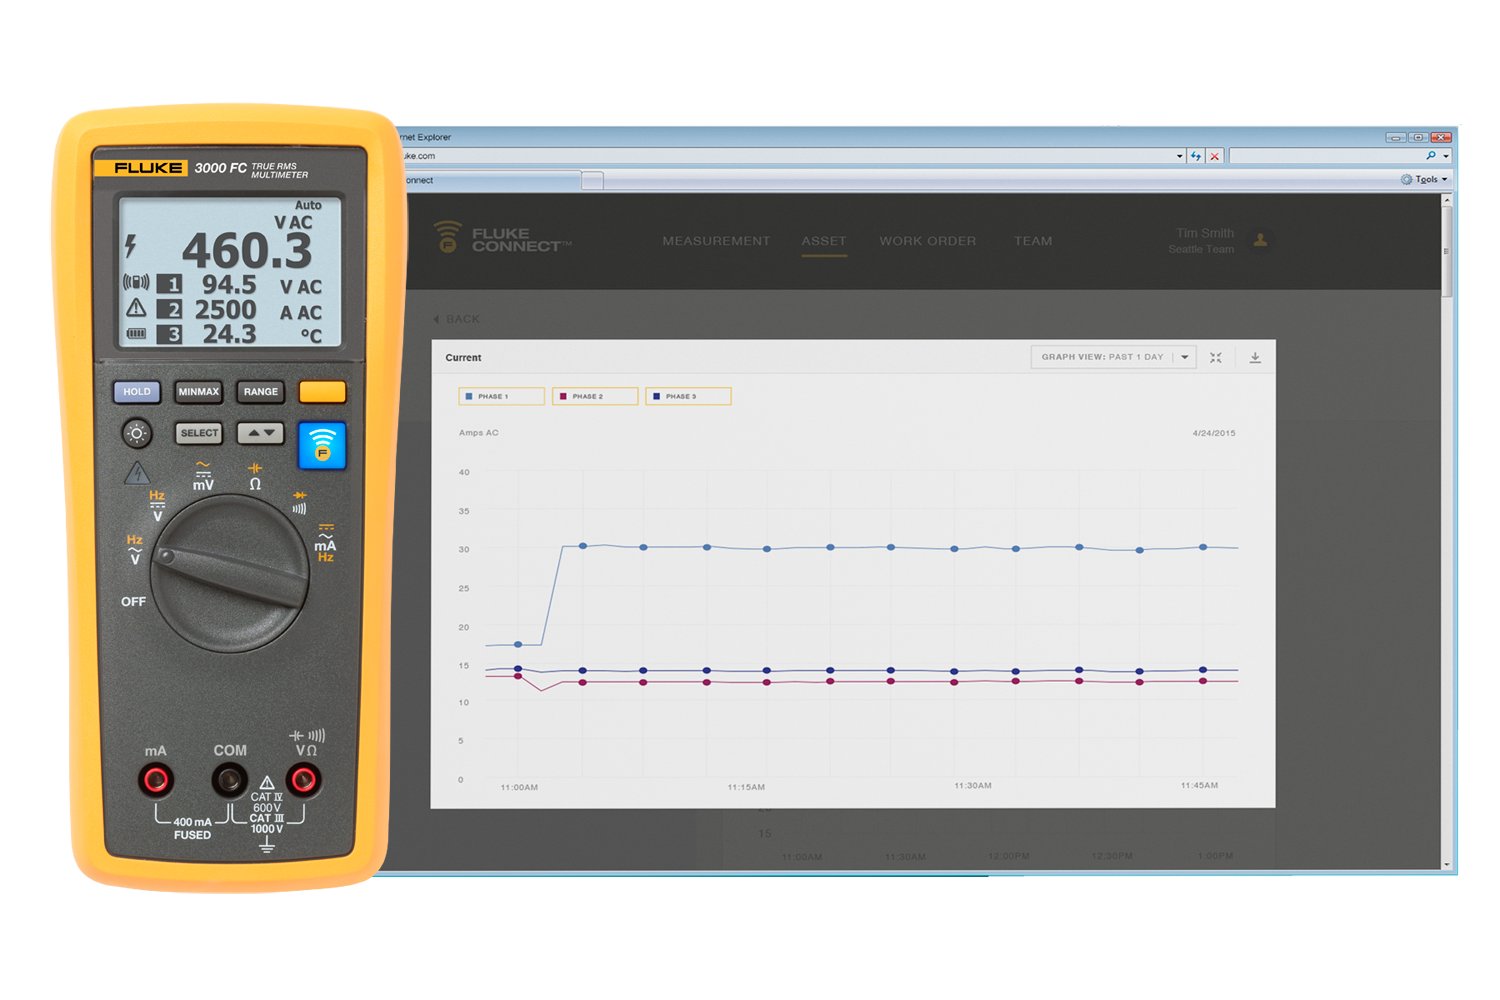 Fluke 3000 Fc Series Wireless Multimeter Using An Infrared Camera To Find Overloaded Circuit Structure Tech